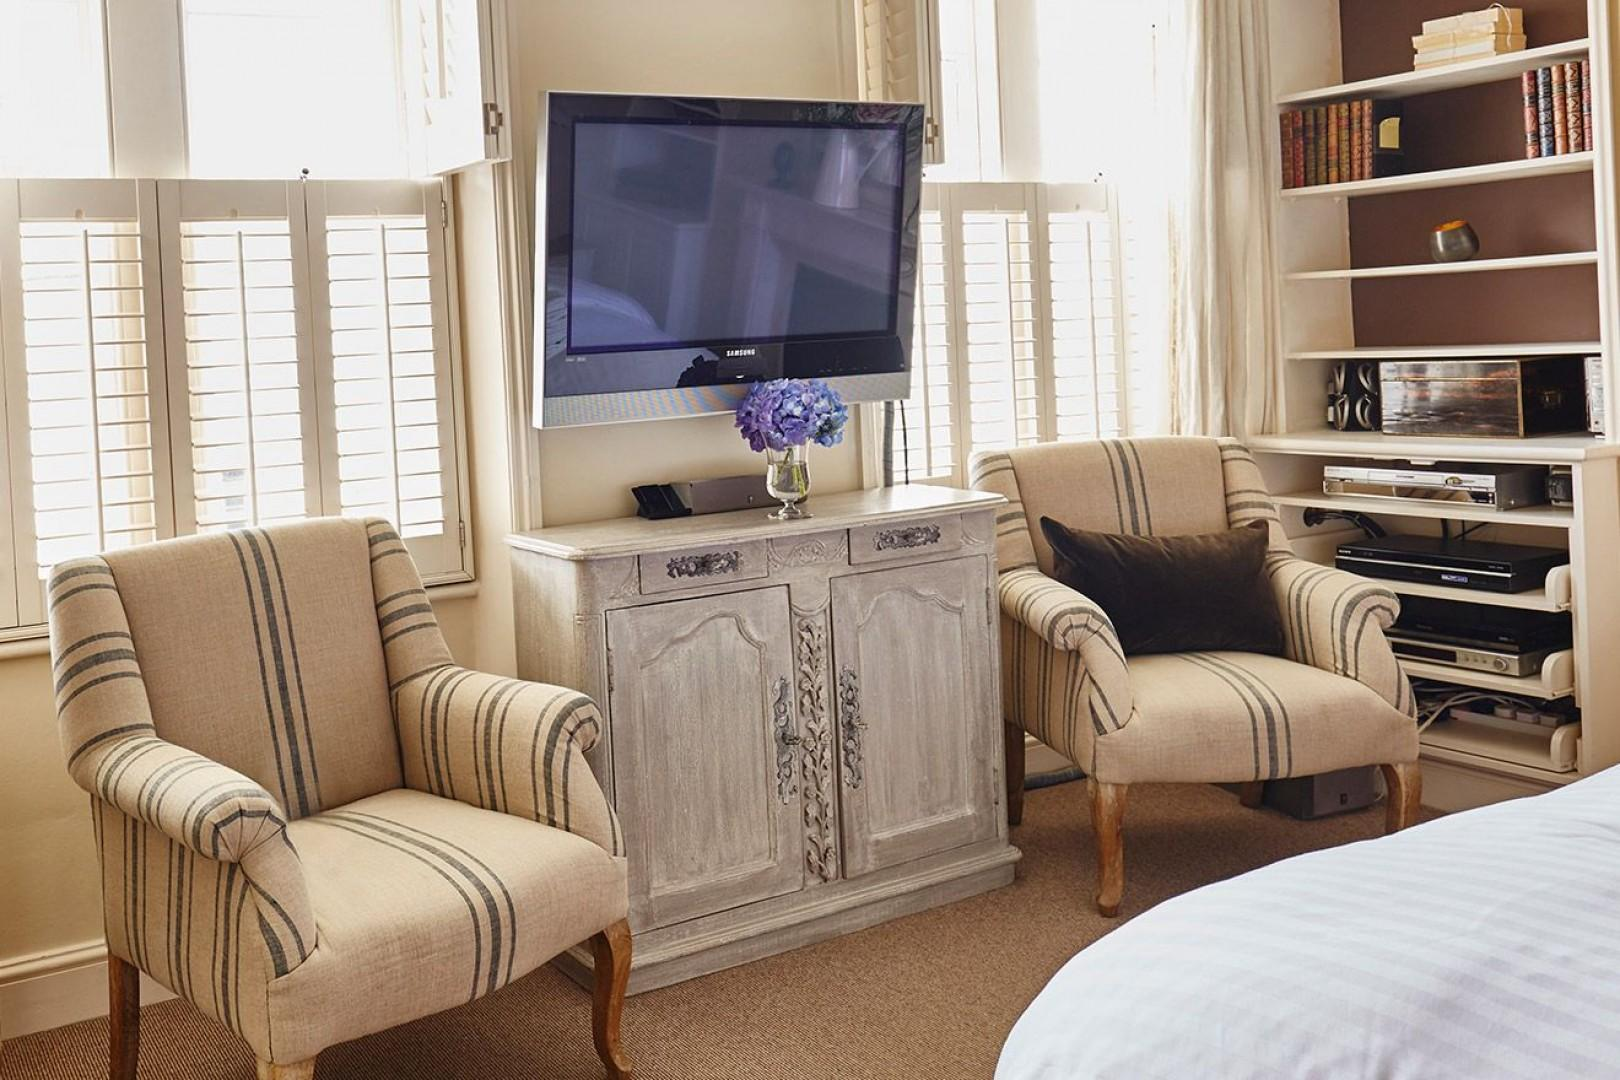 Flat screen TV and two armchairs in the first bedroom